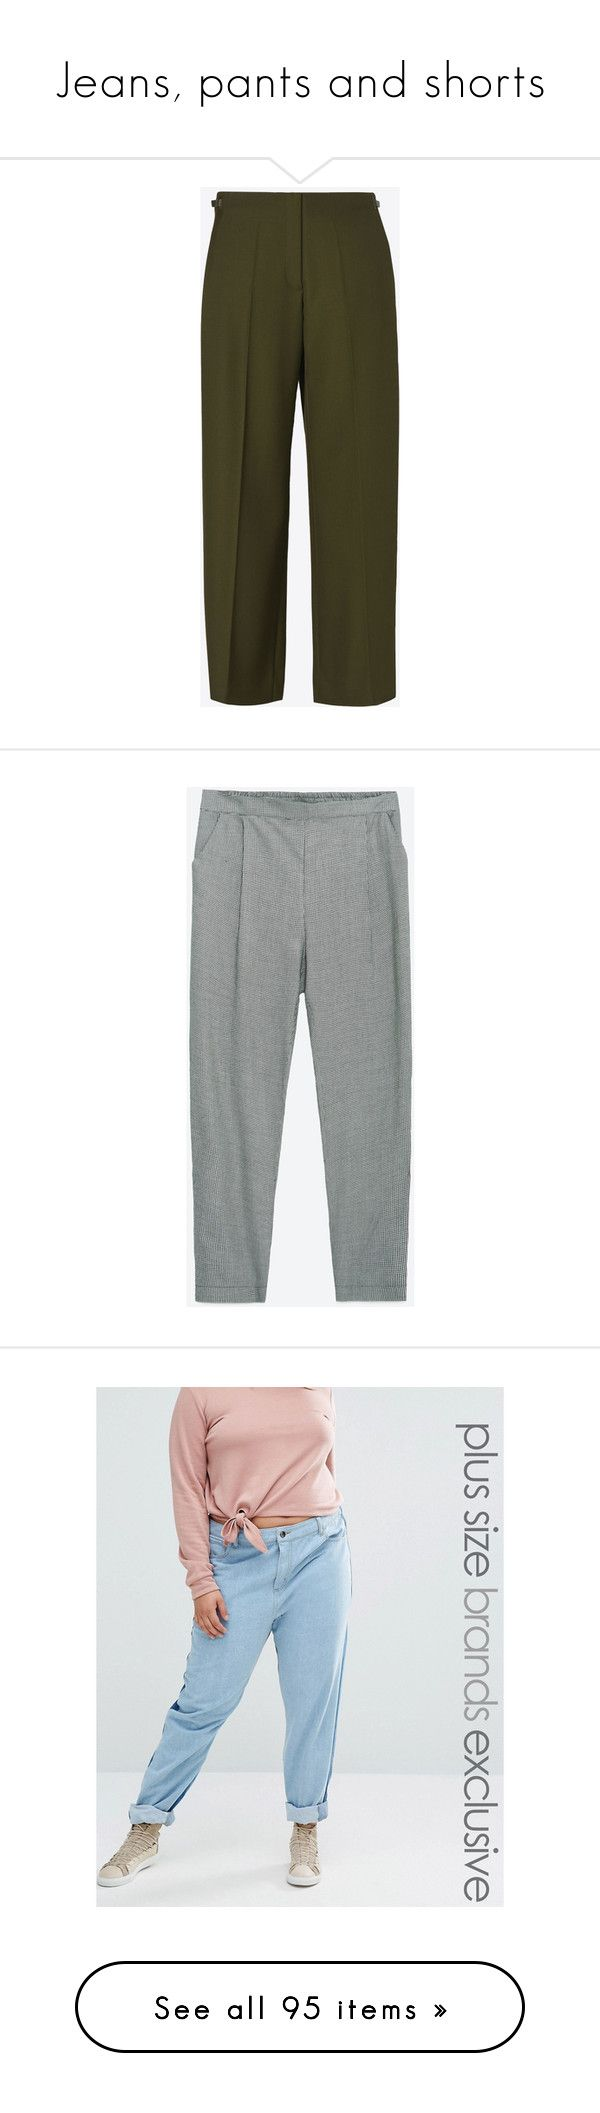 """""""Jeans, pants and shorts"""" by fridastockholm ❤ liked on Polyvore featuring pants, bottoms, calças, trousers, military green, pleated wide leg trousers, olive green pants, wide-leg trousers, wide-leg pants and military green pants"""